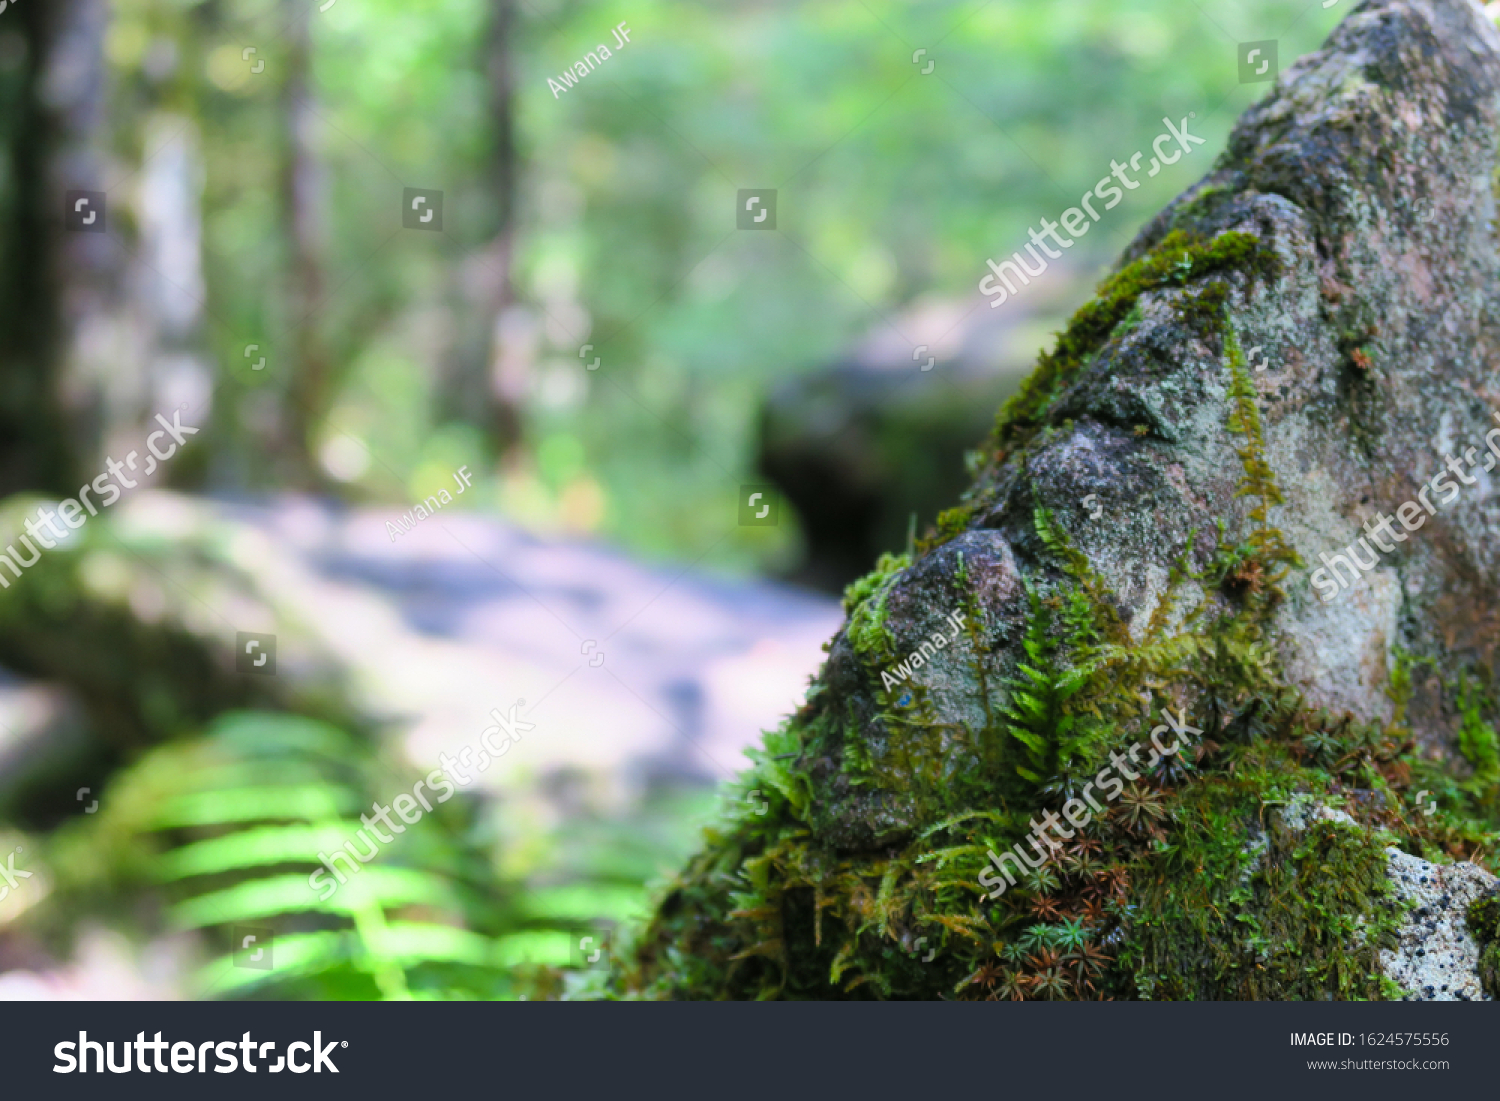 stock-photo-closeup-of-a-rock-covered-wi